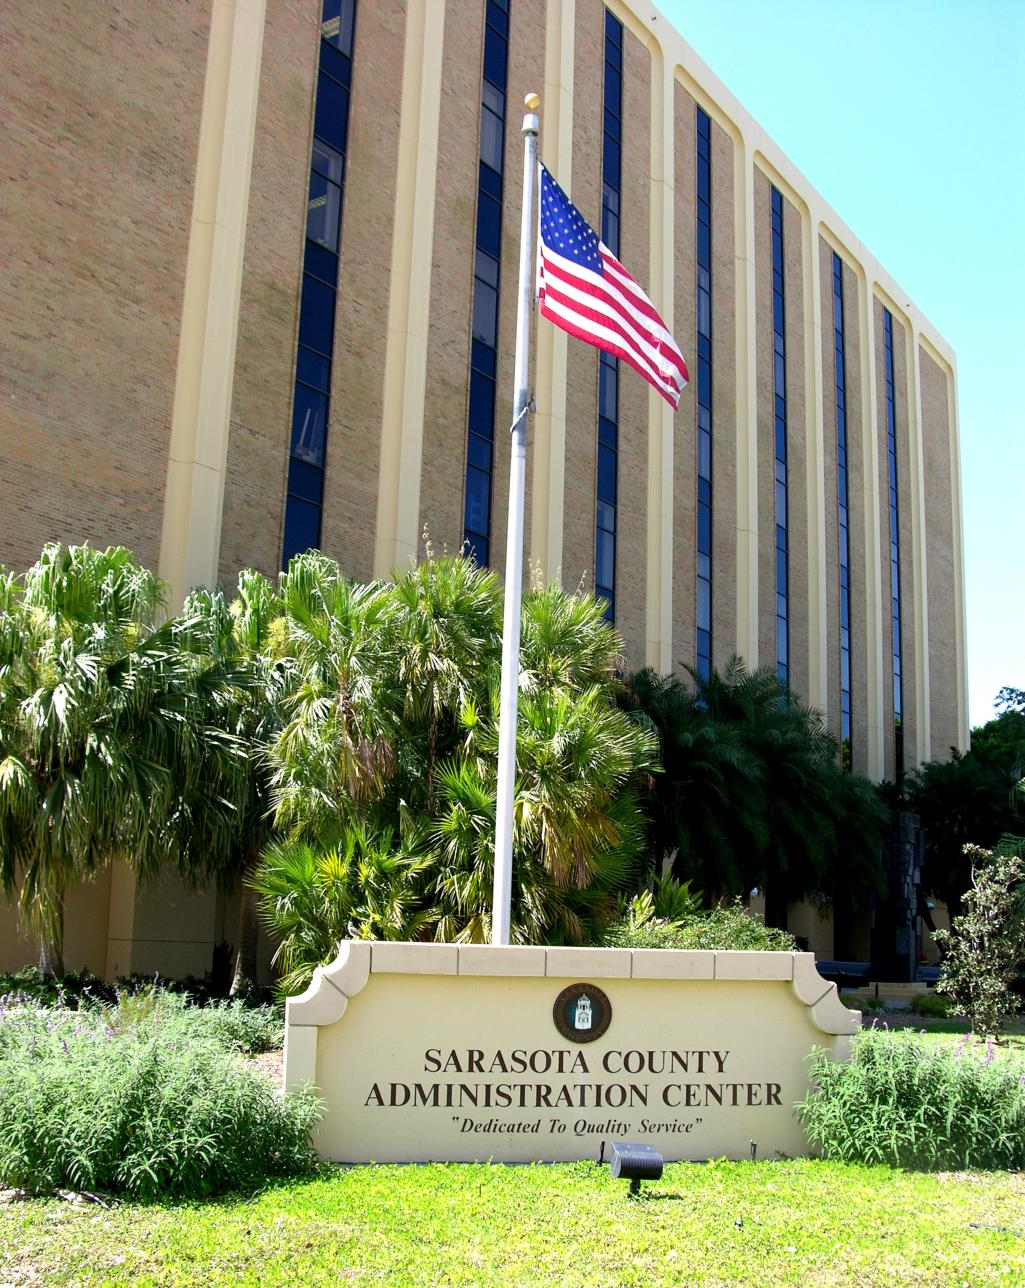 Picture of the Sarasota County Administration Center.